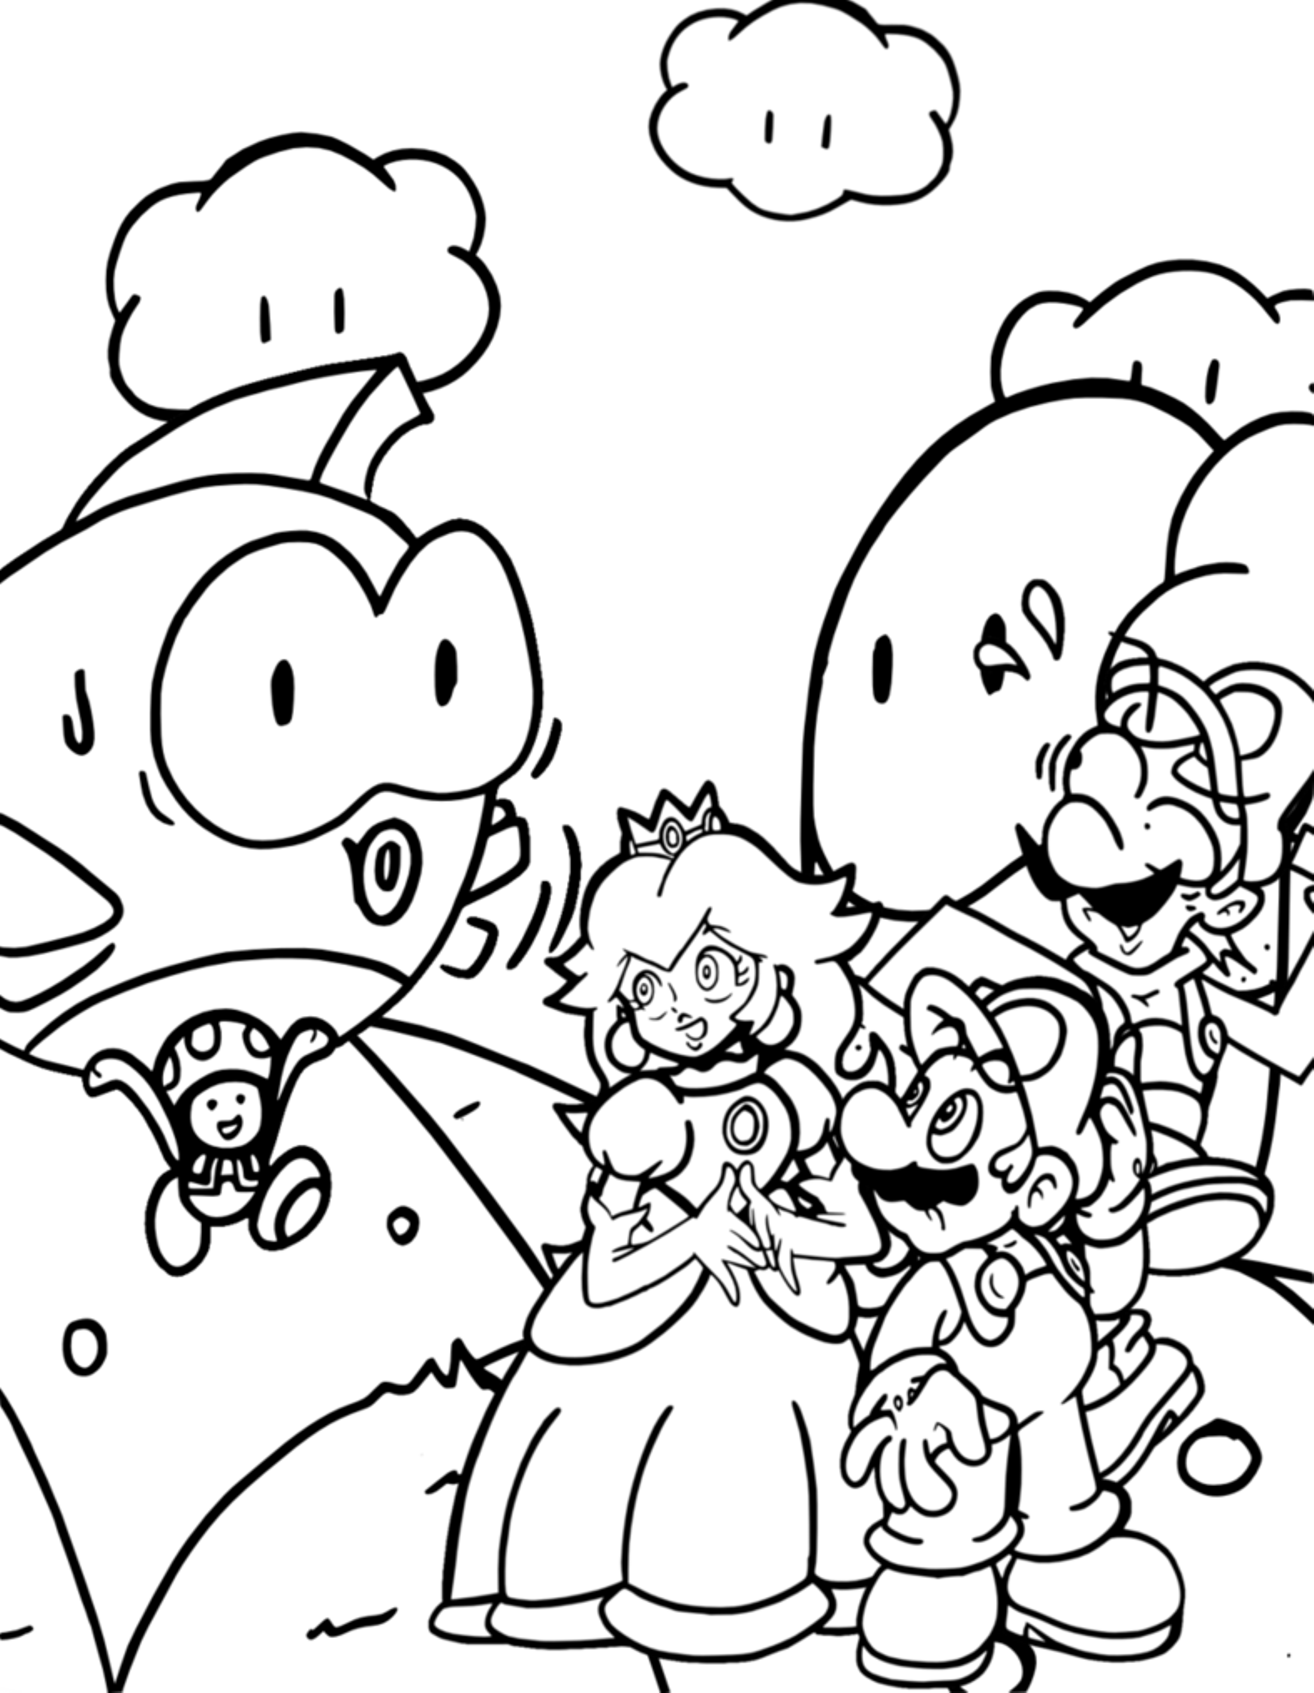 Free Mario Bros Coloring Pages - High Quality Coloring Pages